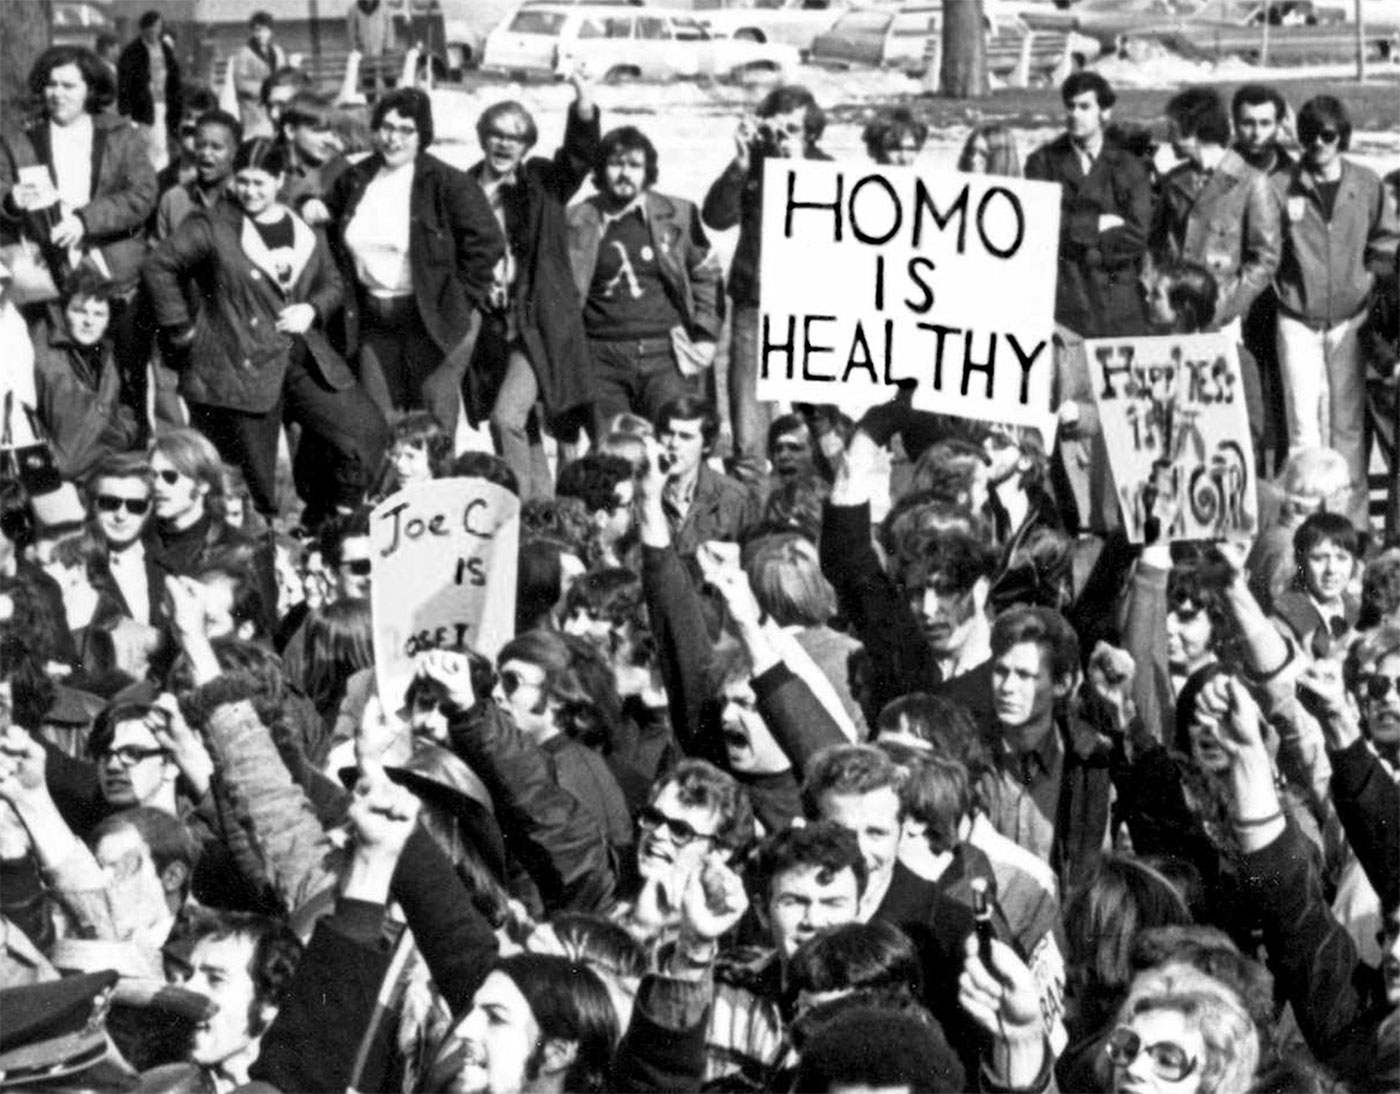 Demonstrators gathered in Albany, New York, in 1971 to demand gay rights and to declare that